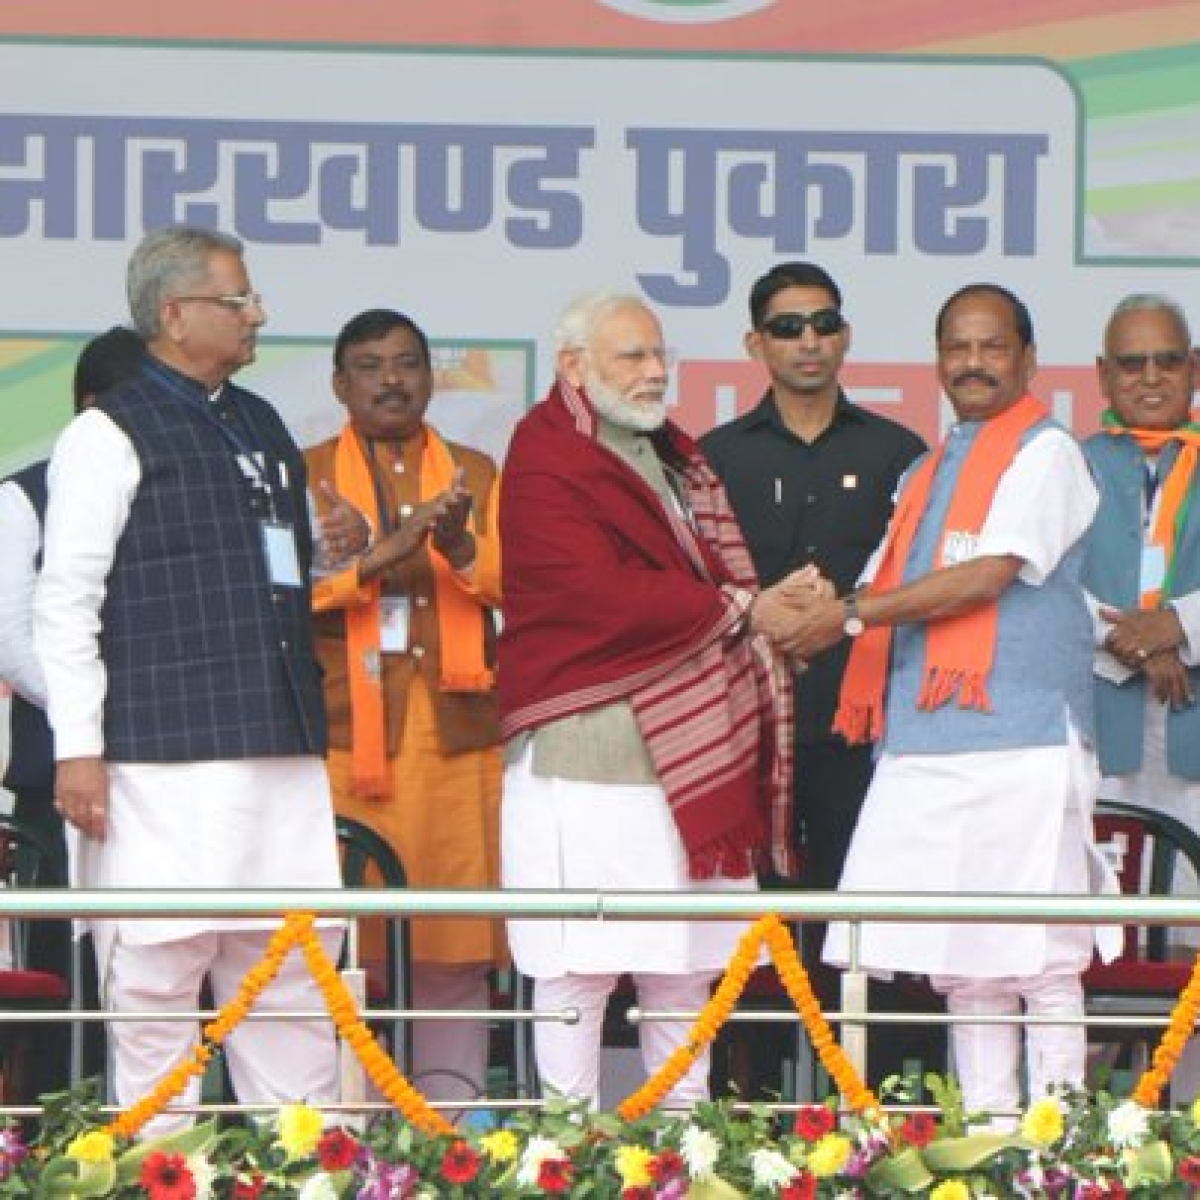 Modi shares stage with murder accused - who is Jharkhand BJP candidate Shashi Bhushan Mehta?